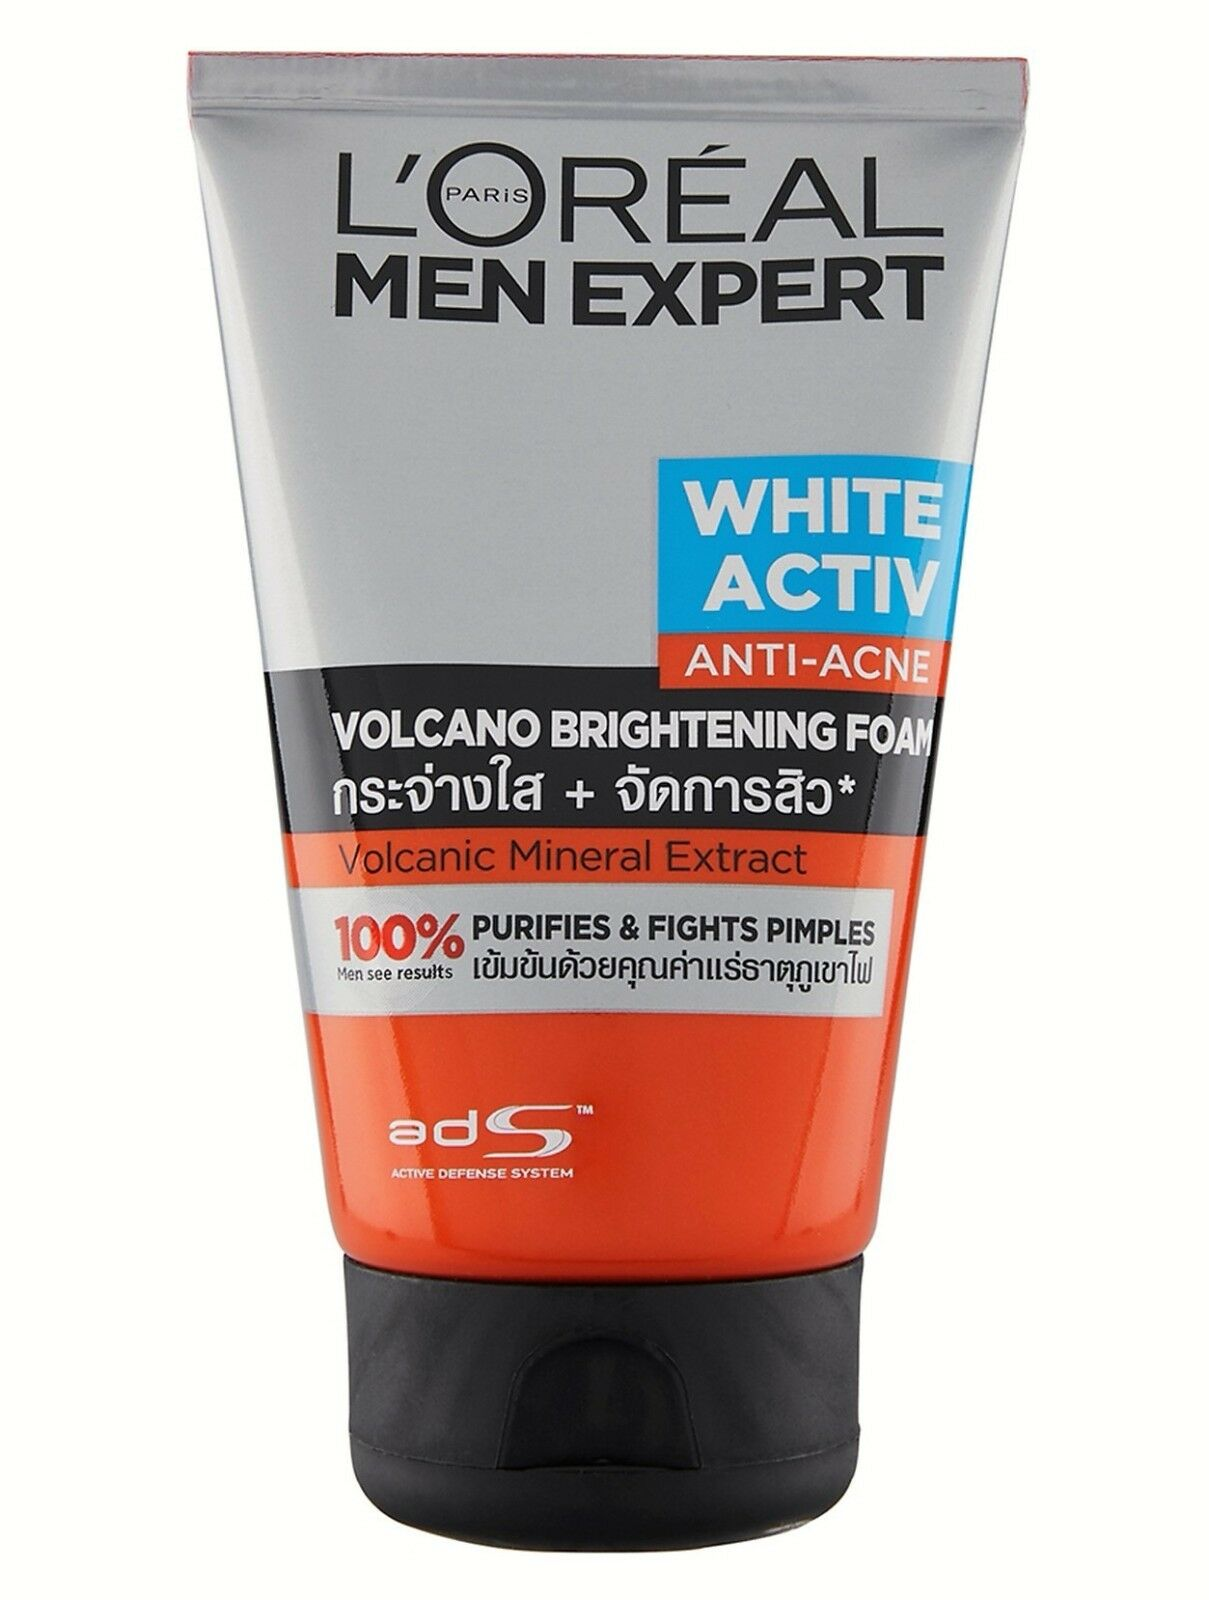 l oreal paris men expert white activ anti acne volcano brightening foam 100 ml 885228366561 ebay. Black Bedroom Furniture Sets. Home Design Ideas